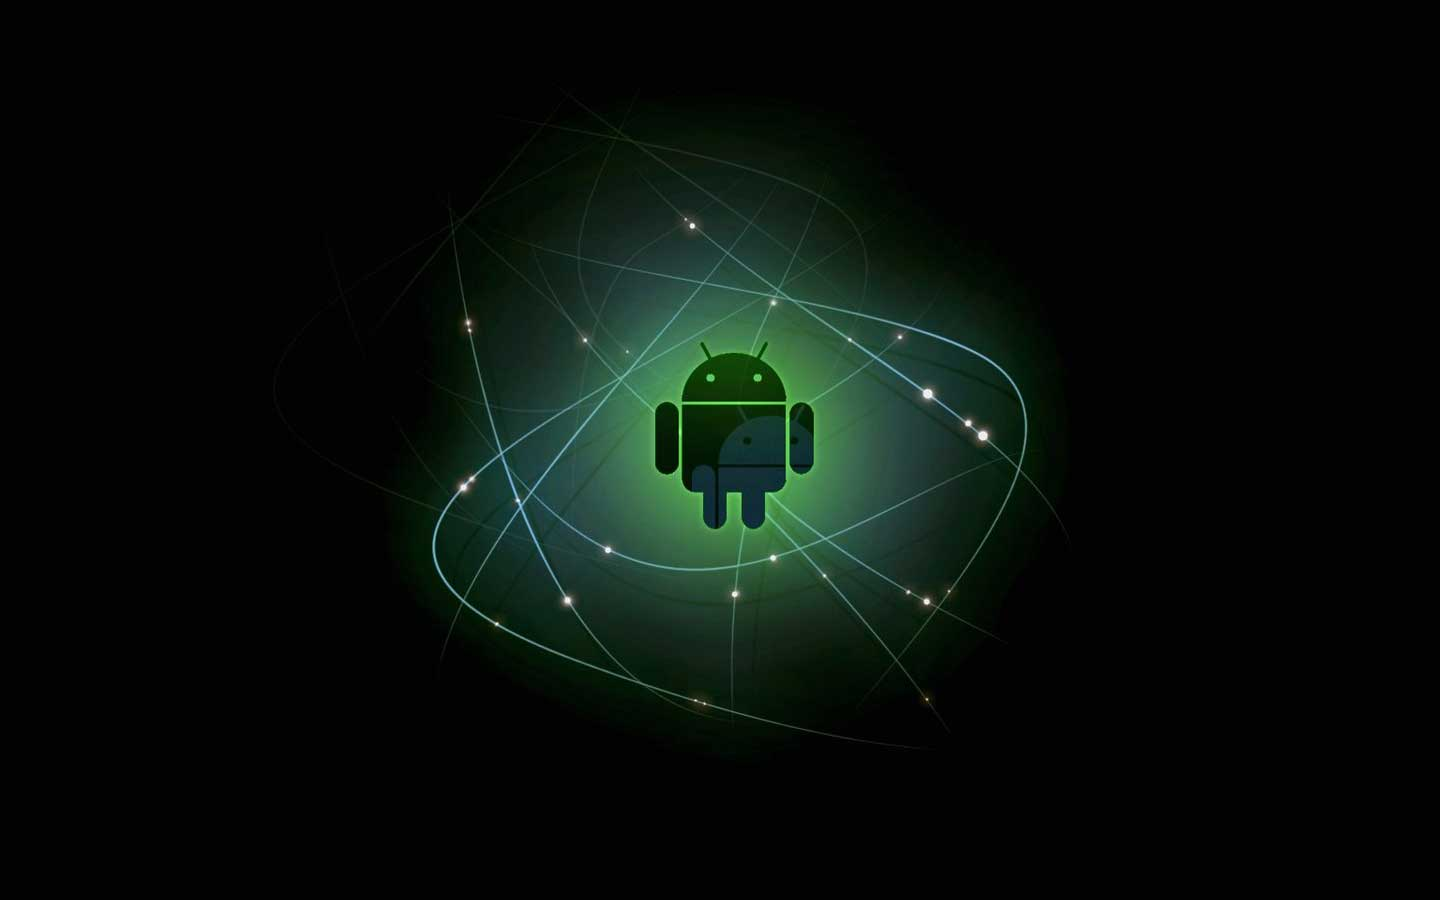 Best Android Jelly Bean Wallpaper For Android Wallpaper with 1440x900 1440x900